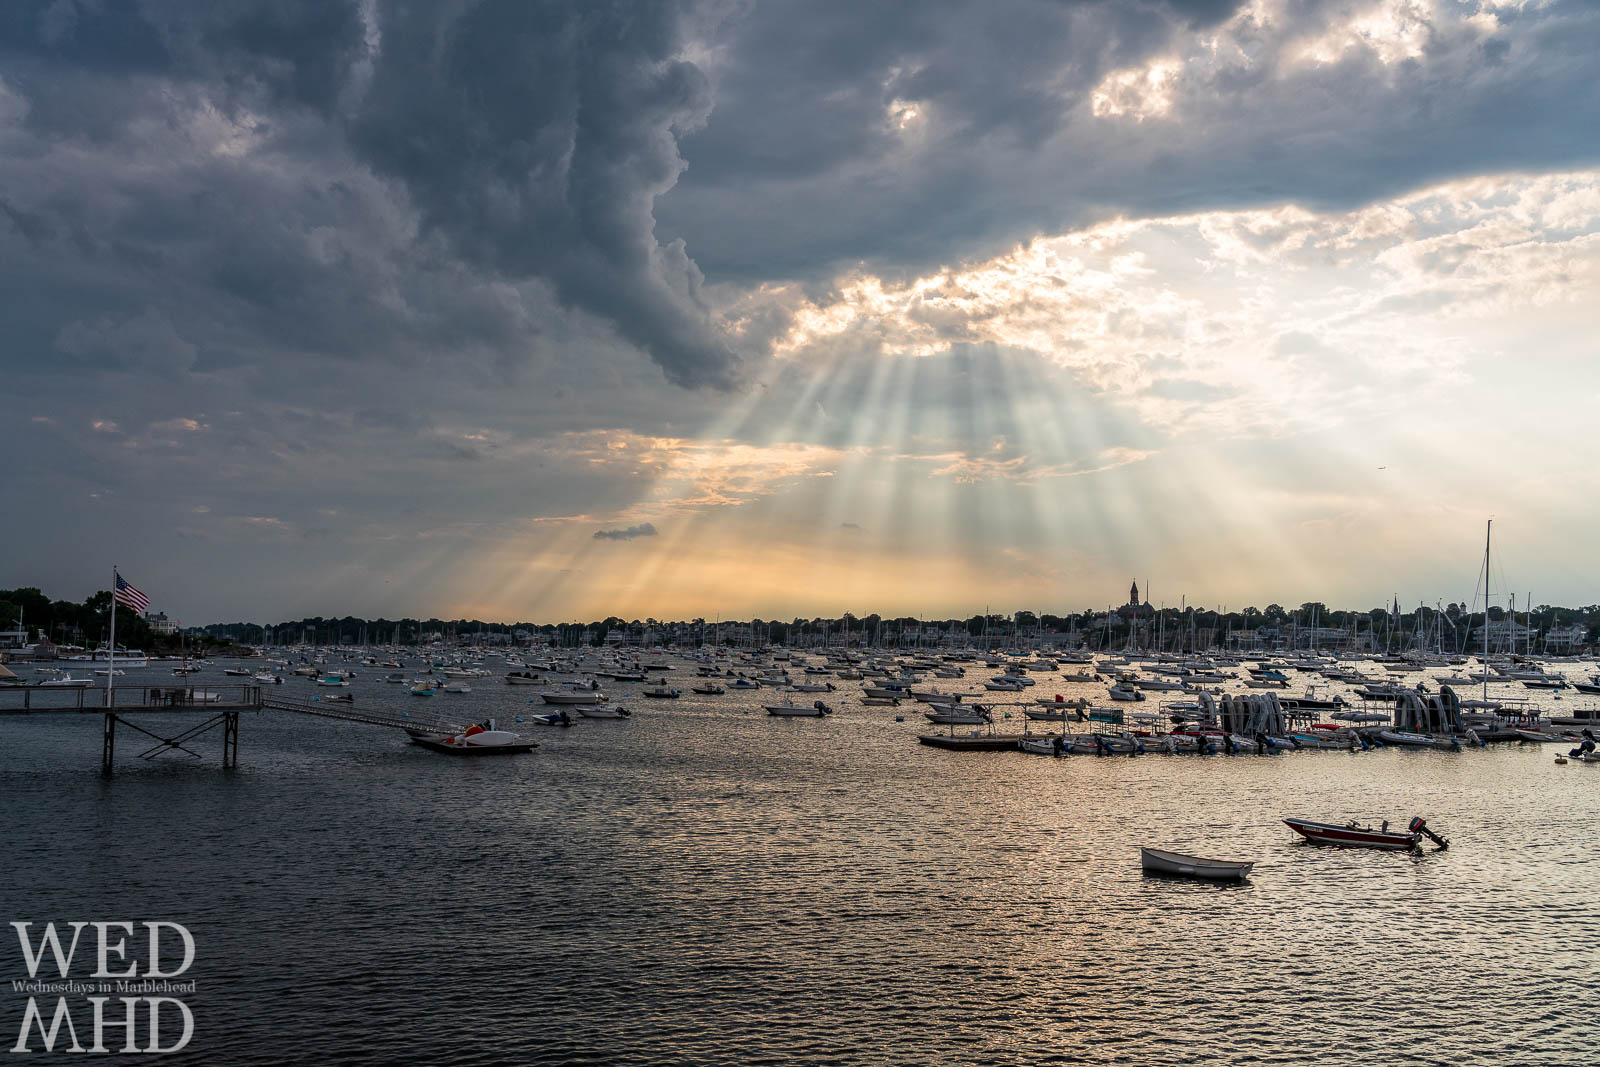 A full harbor and a flag flying at the end of a pier on the Neck are bathed by Marblehead Rays pouring through broken cloud cover